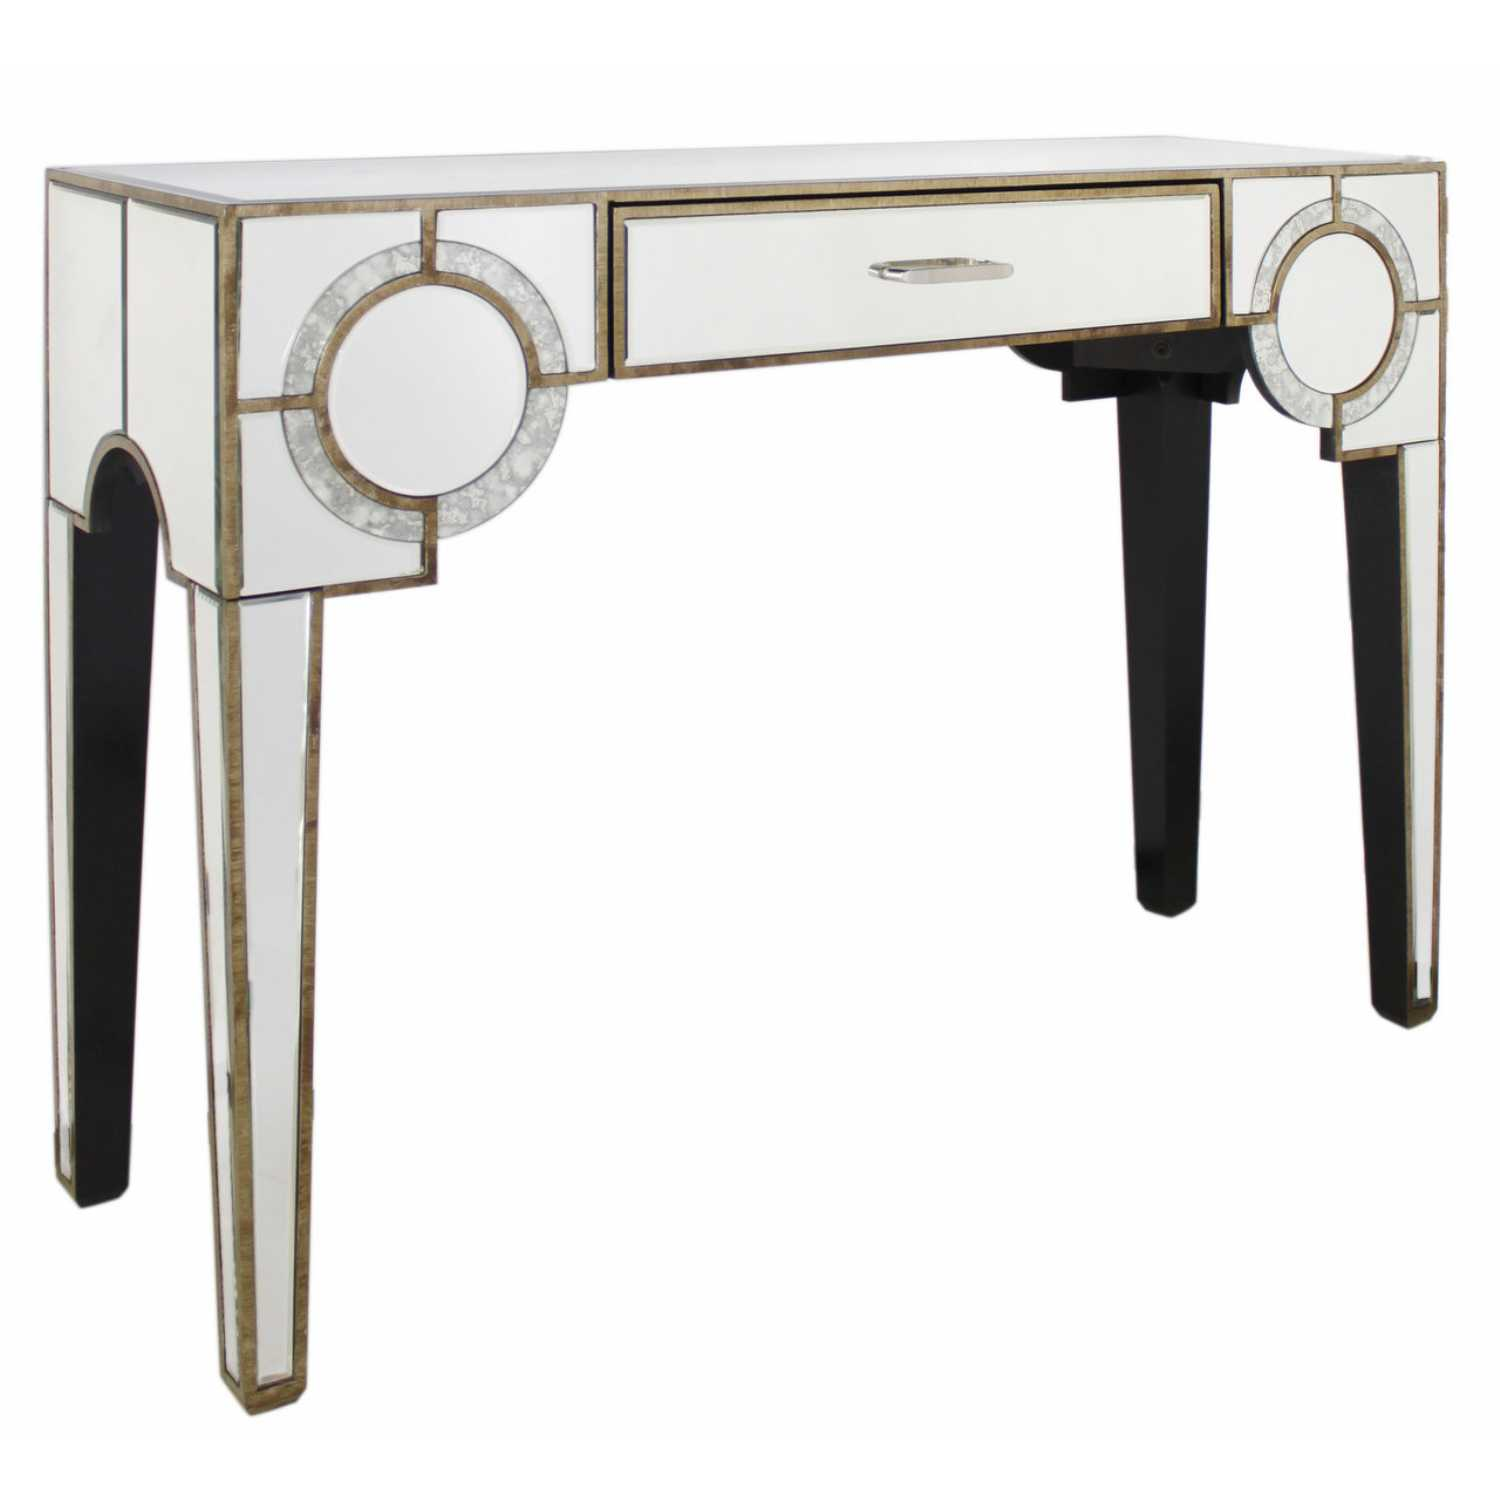 New Deco Mirrored Antique Console Table Gatsby Antique Mirror